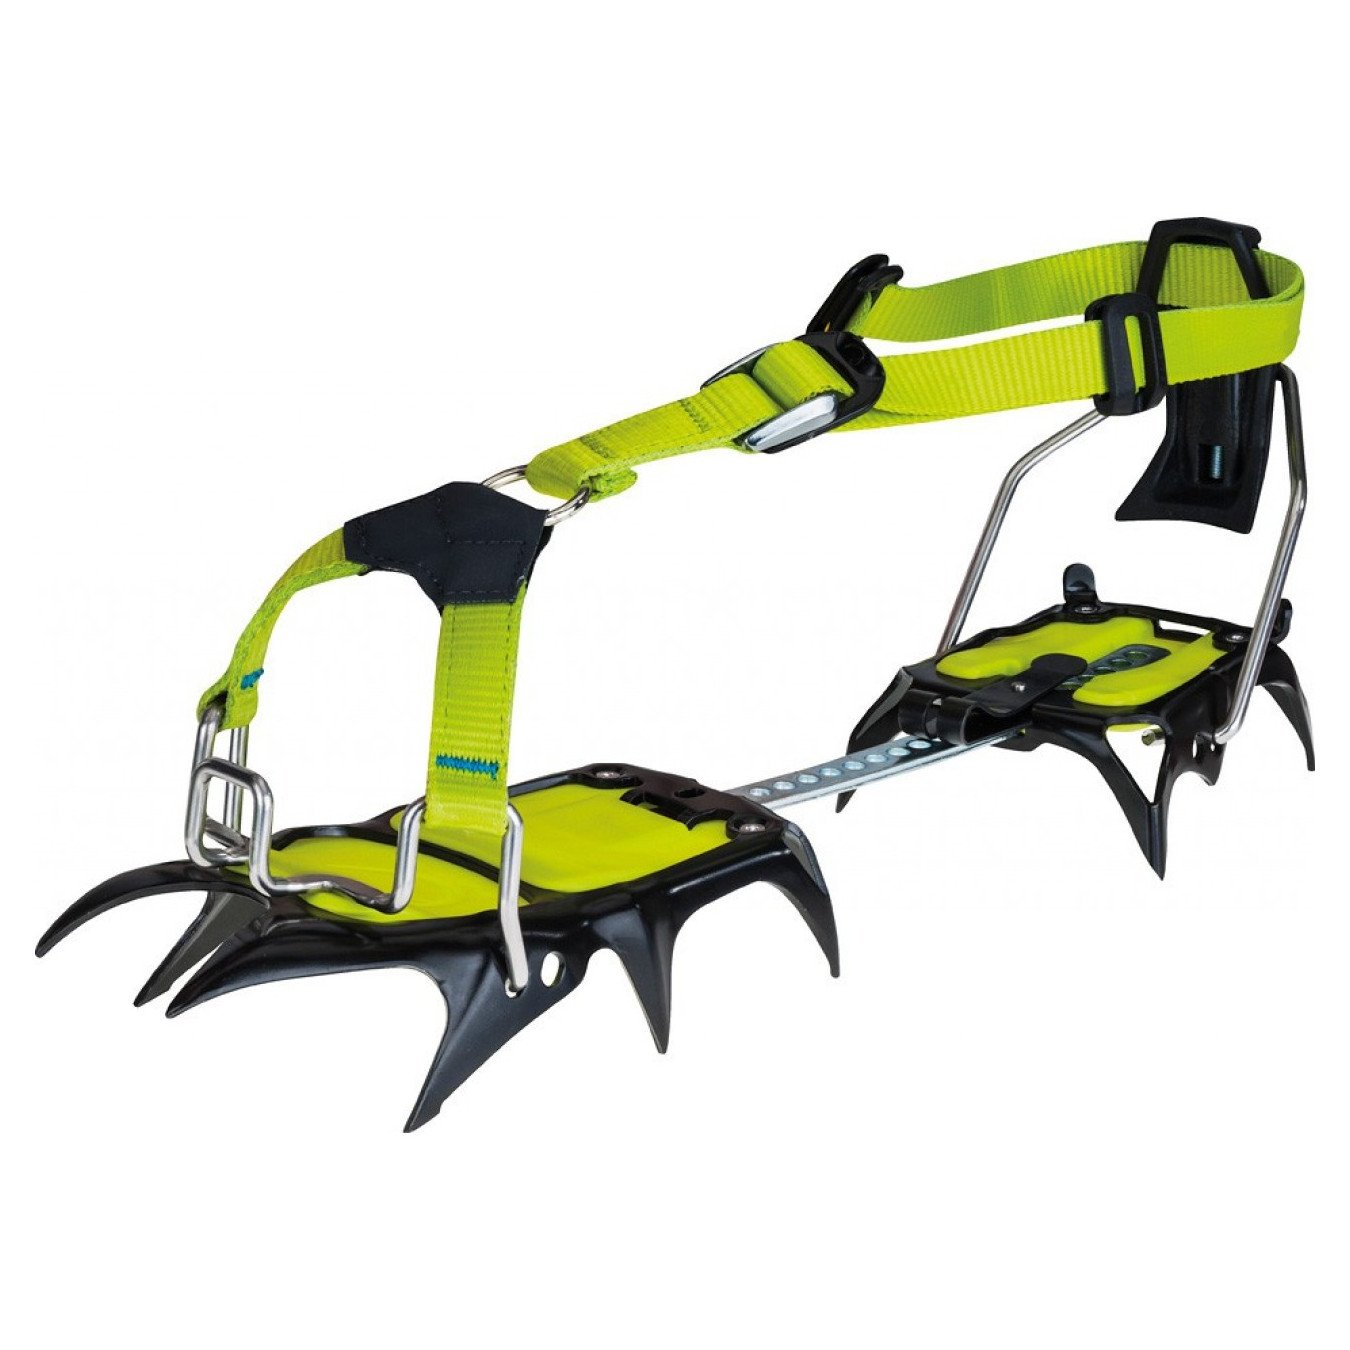 Edelrid Shark Crampon in green and black colours